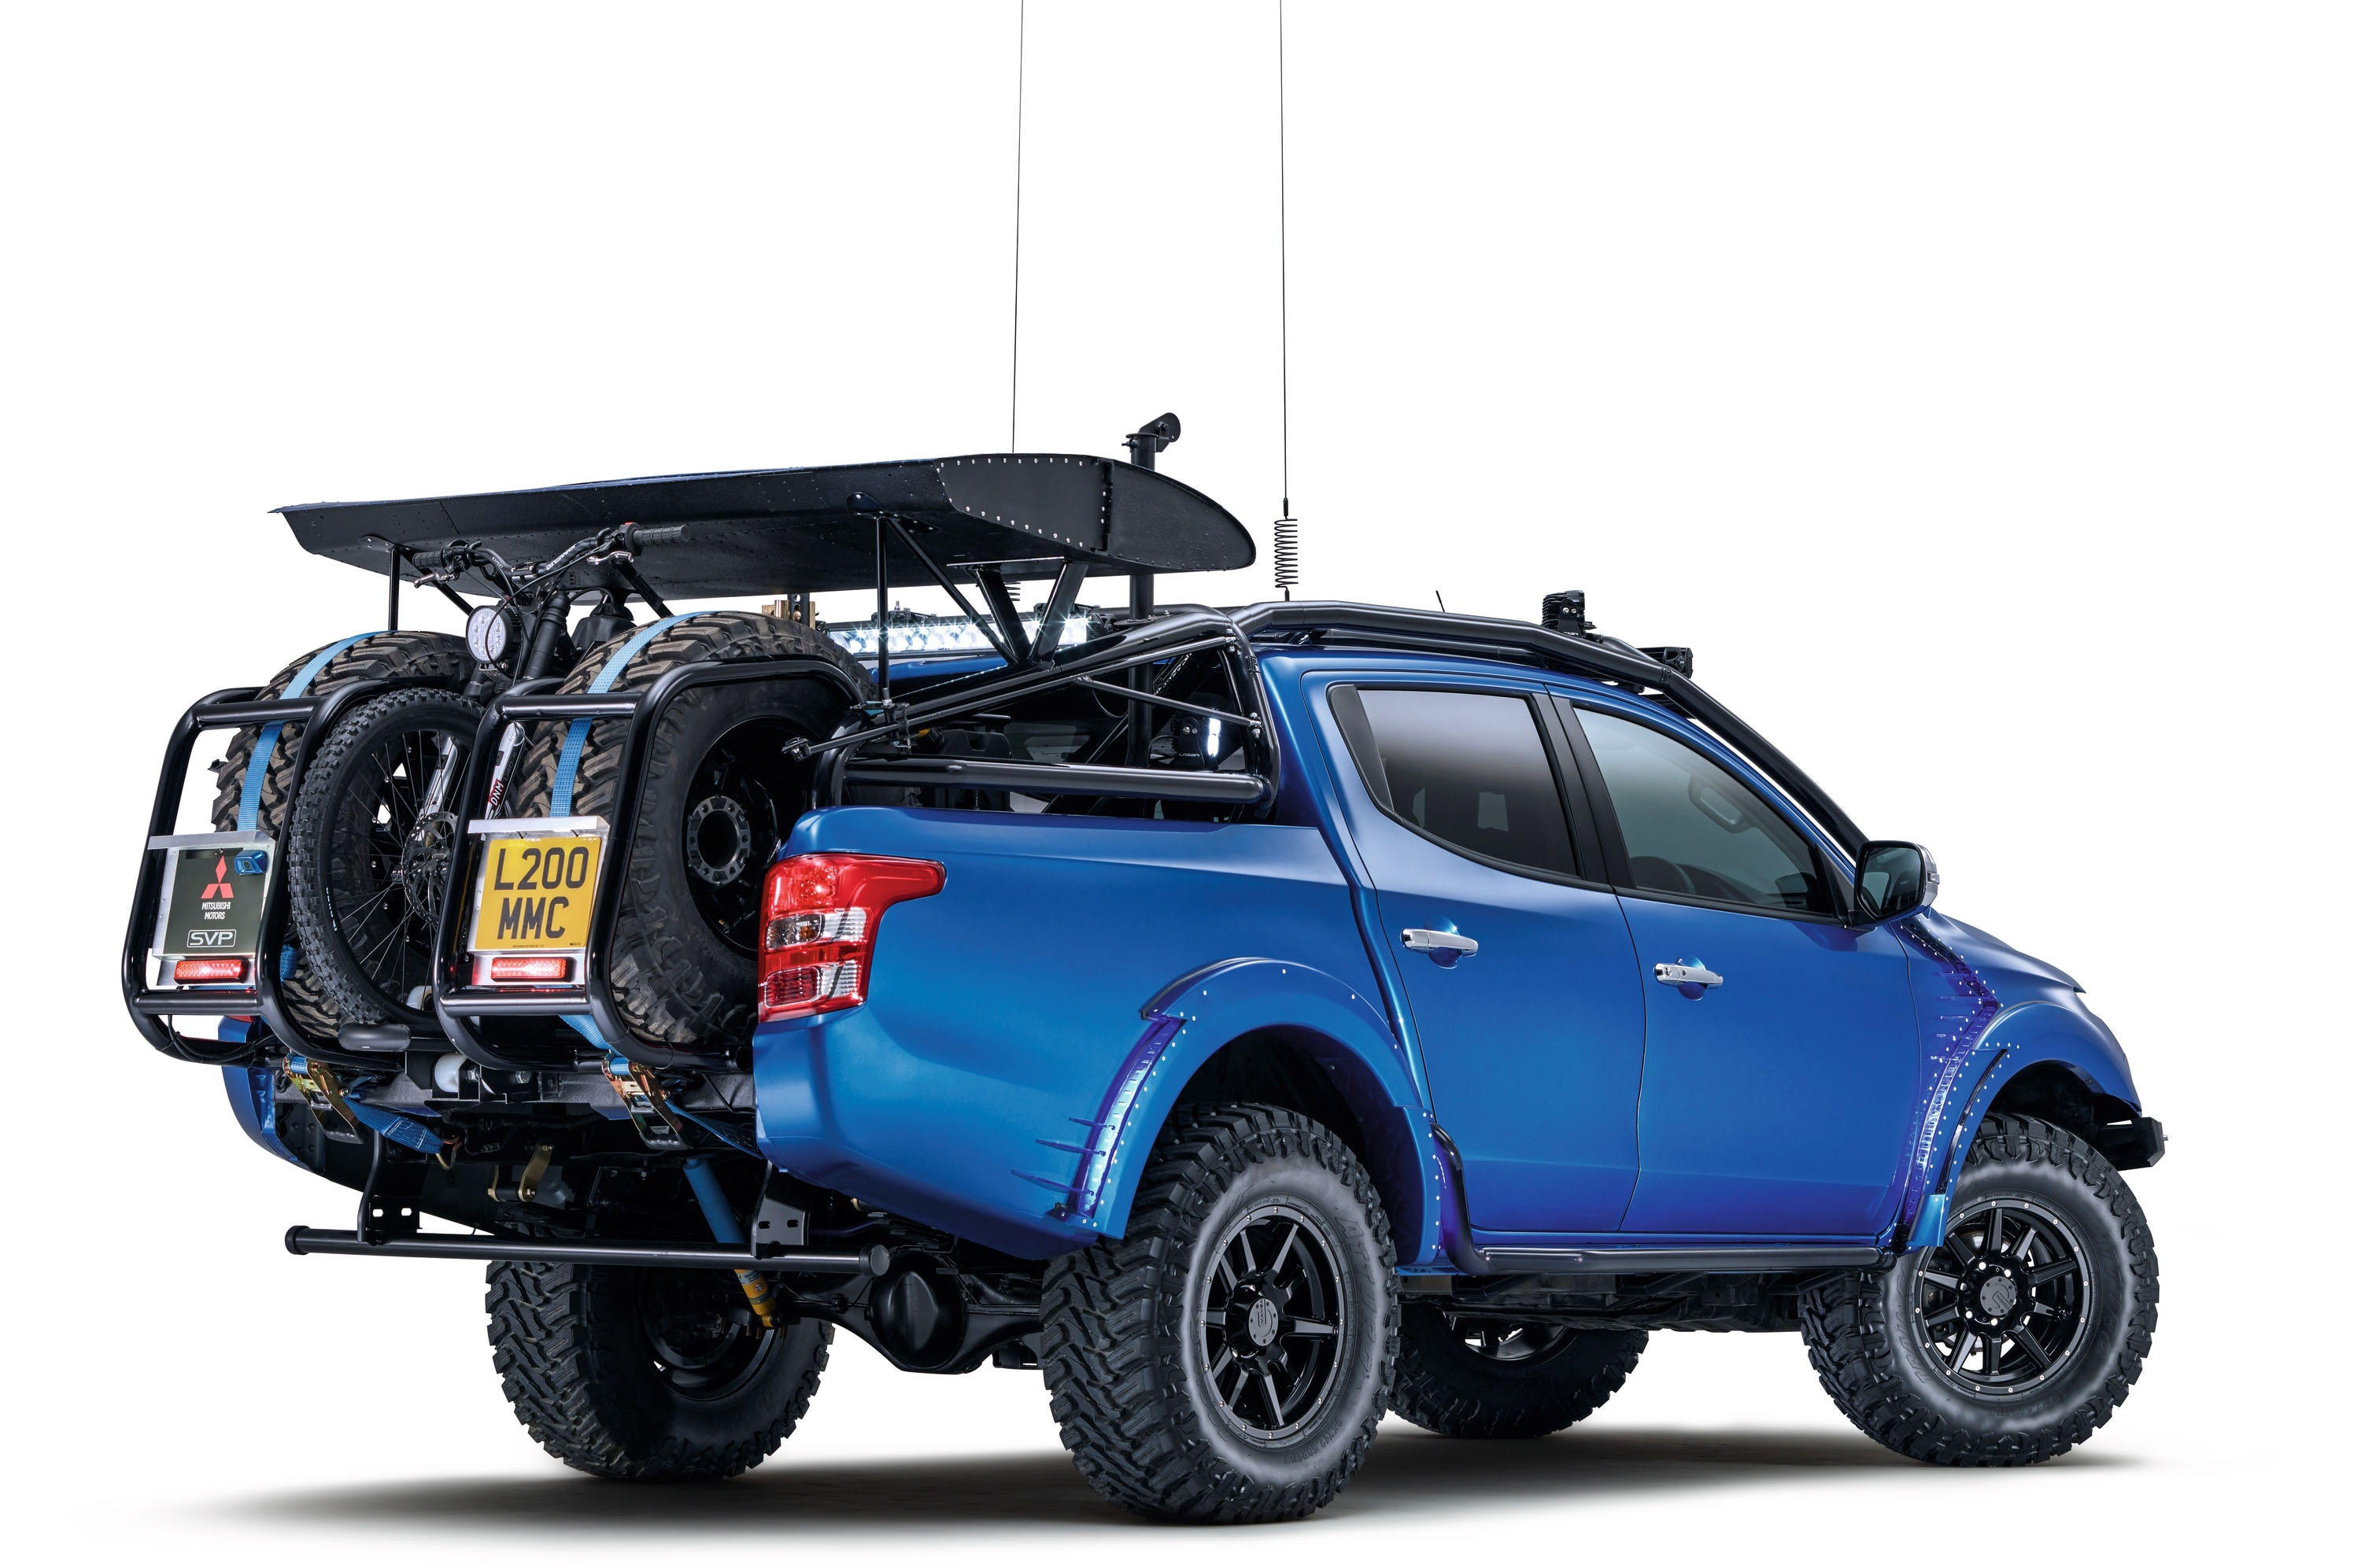 2017 Mitsubishi L200 Desert Warrior rear